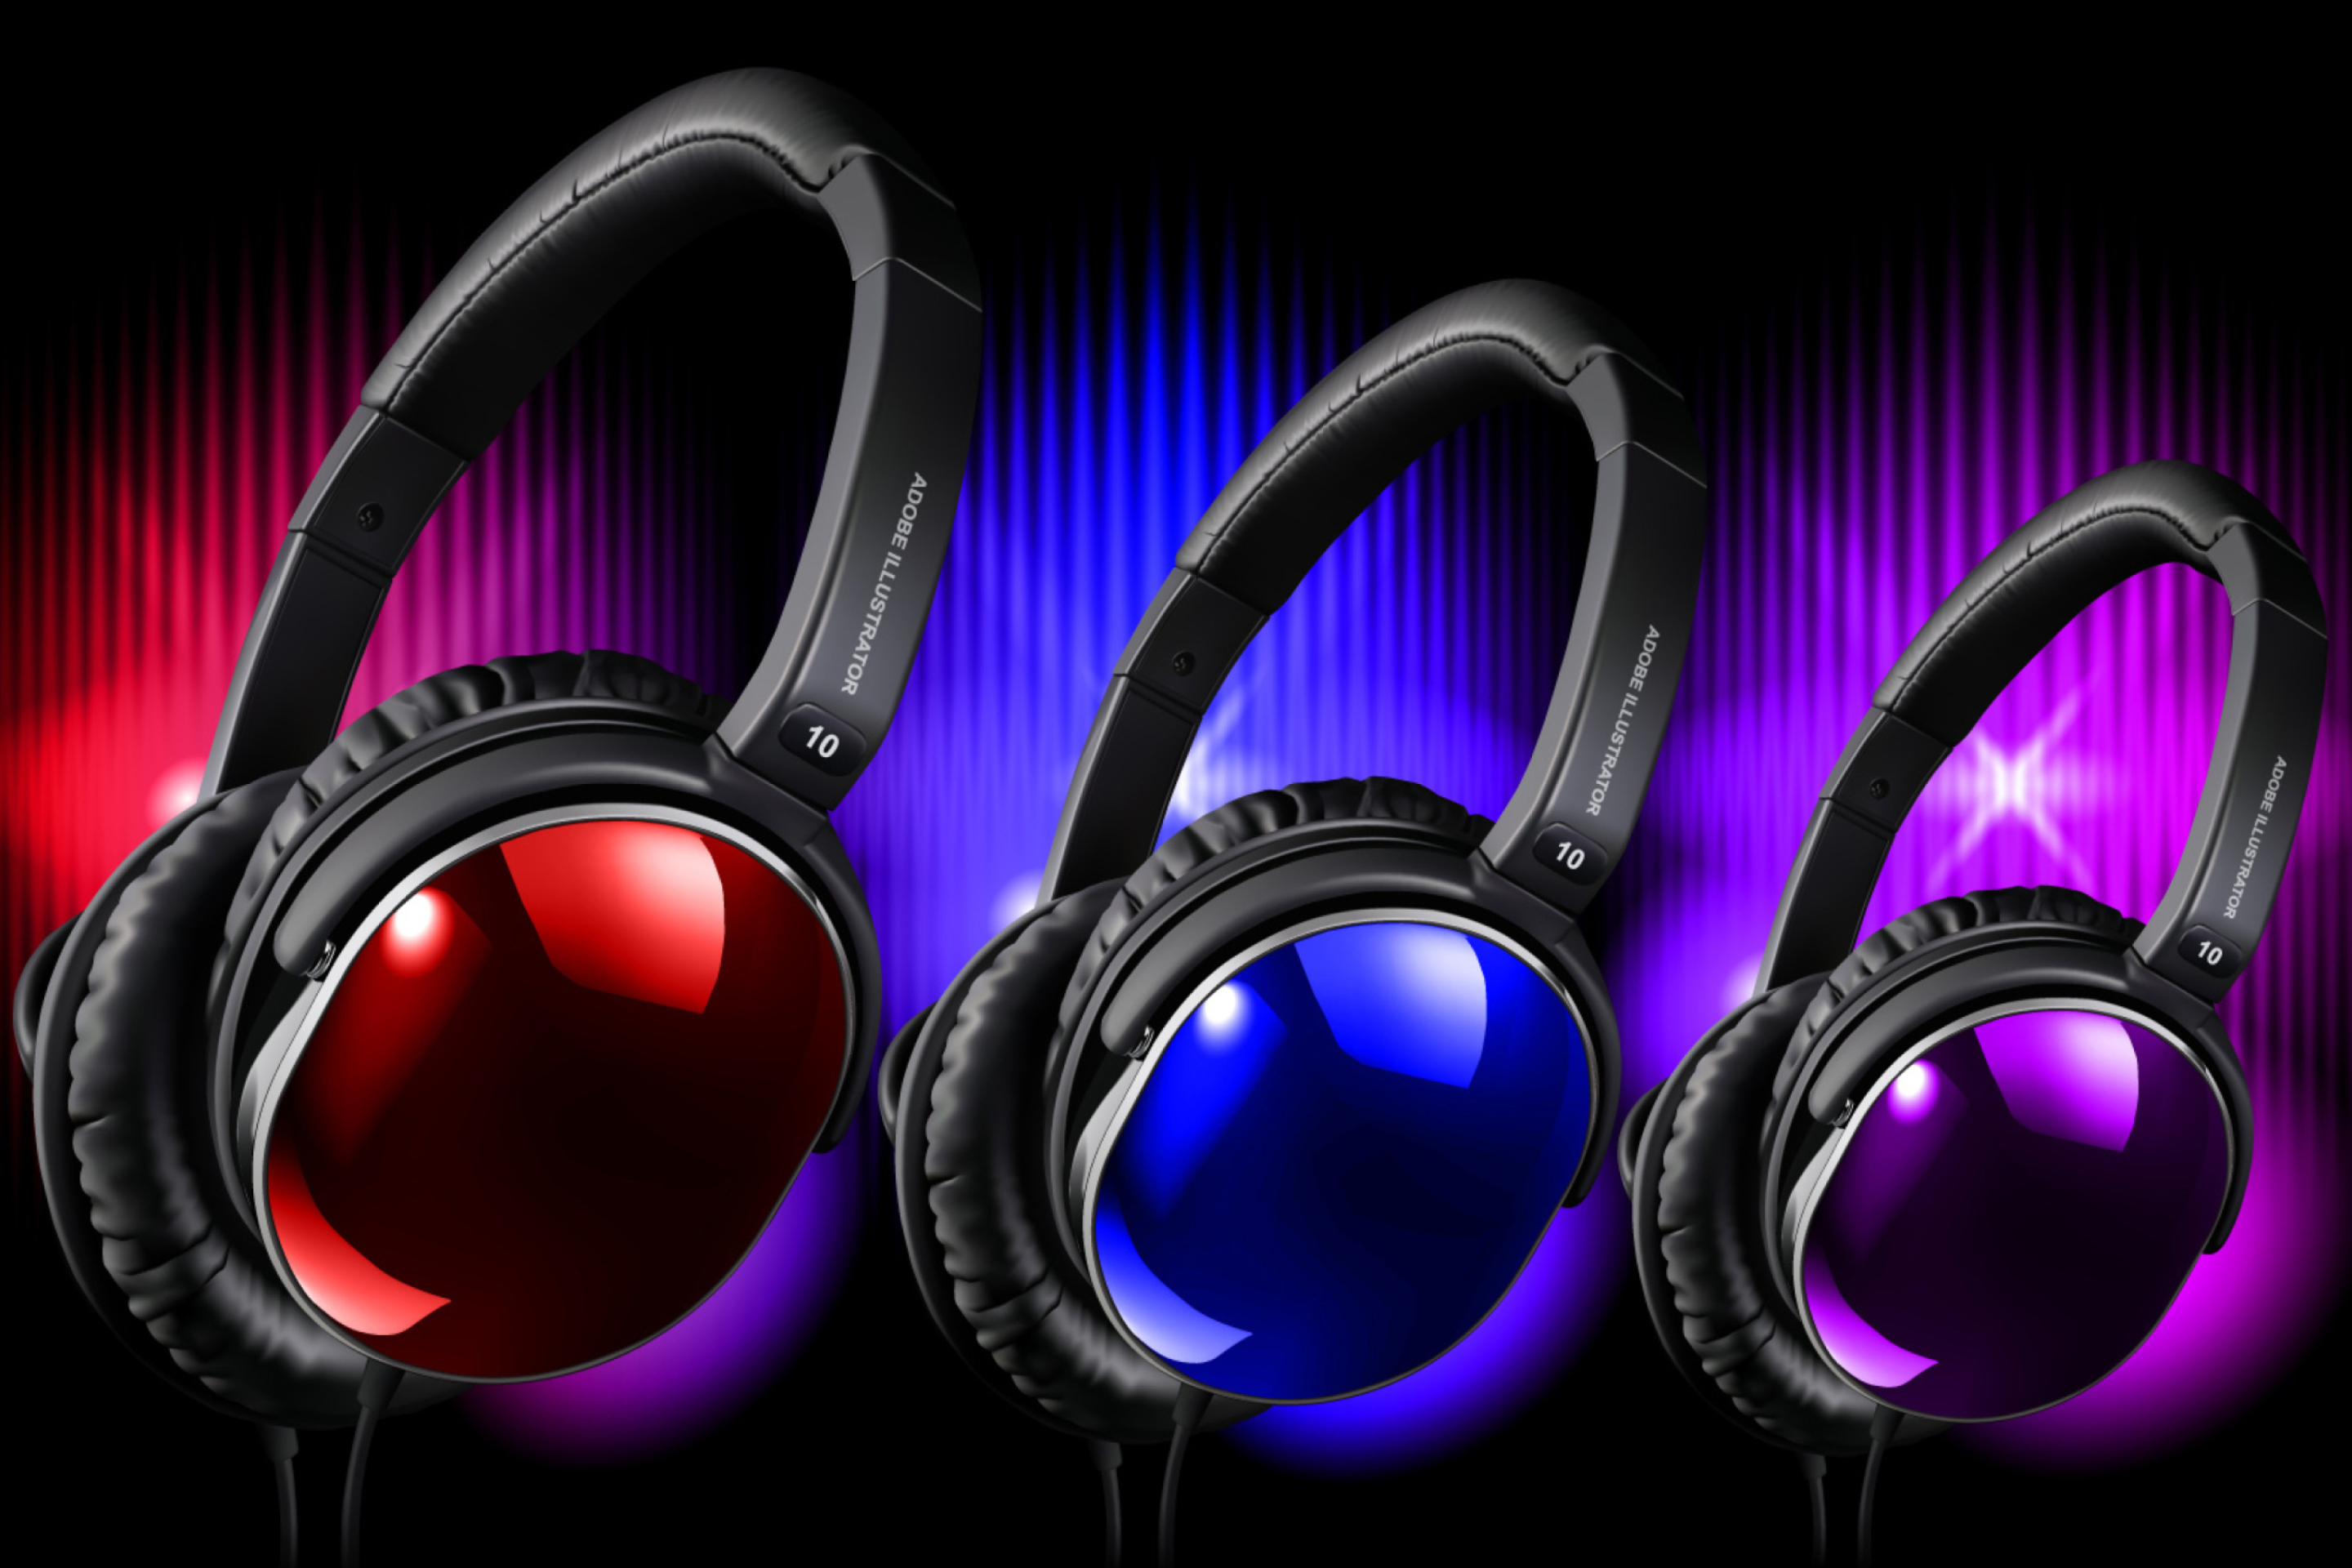 Colorful Headphones wallpaper 2880x1920